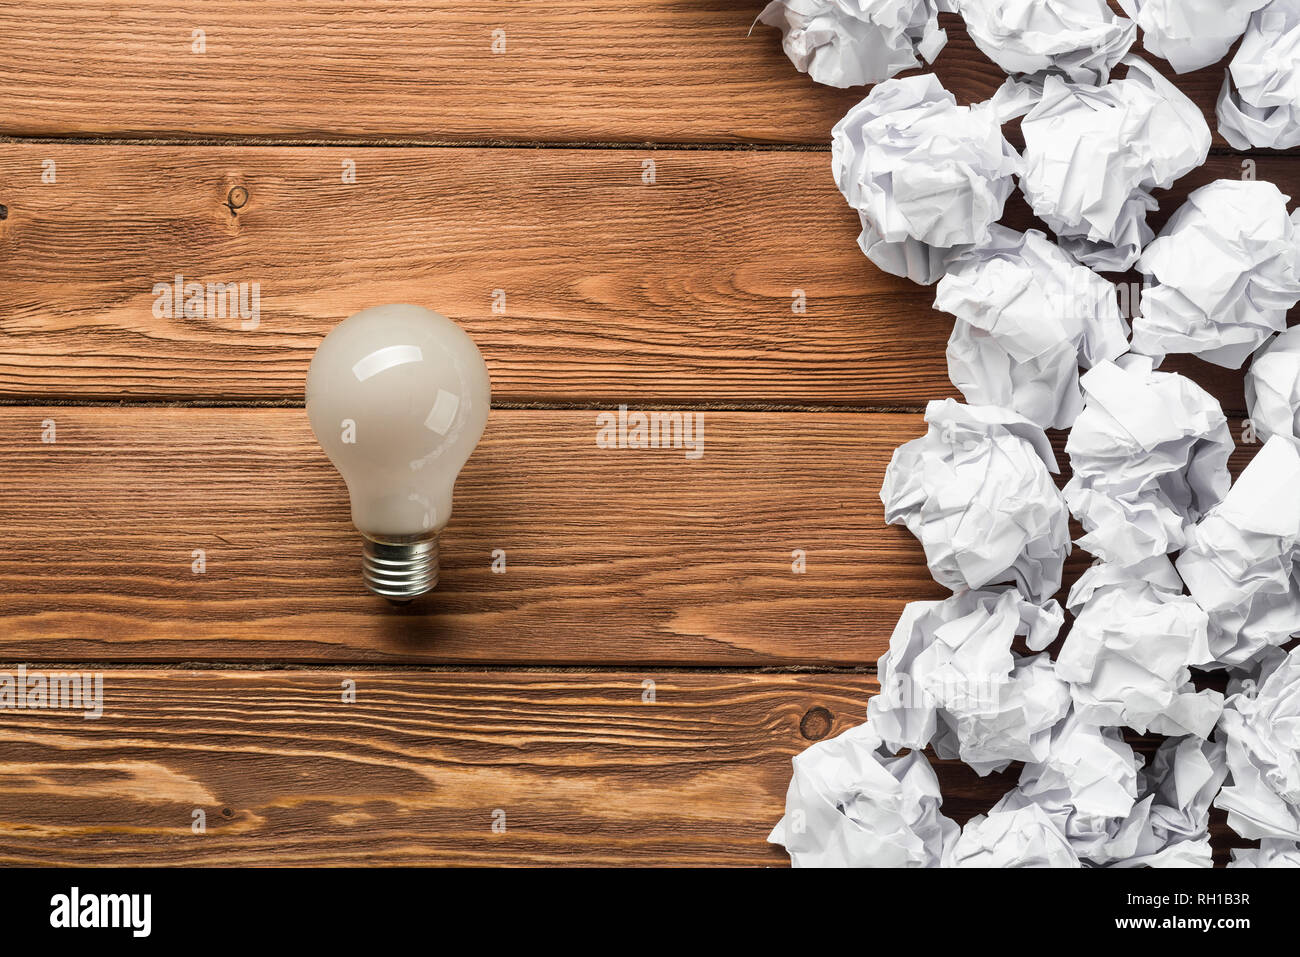 Ideological concept with wastepaper light bulb on wooden table - Stock Image